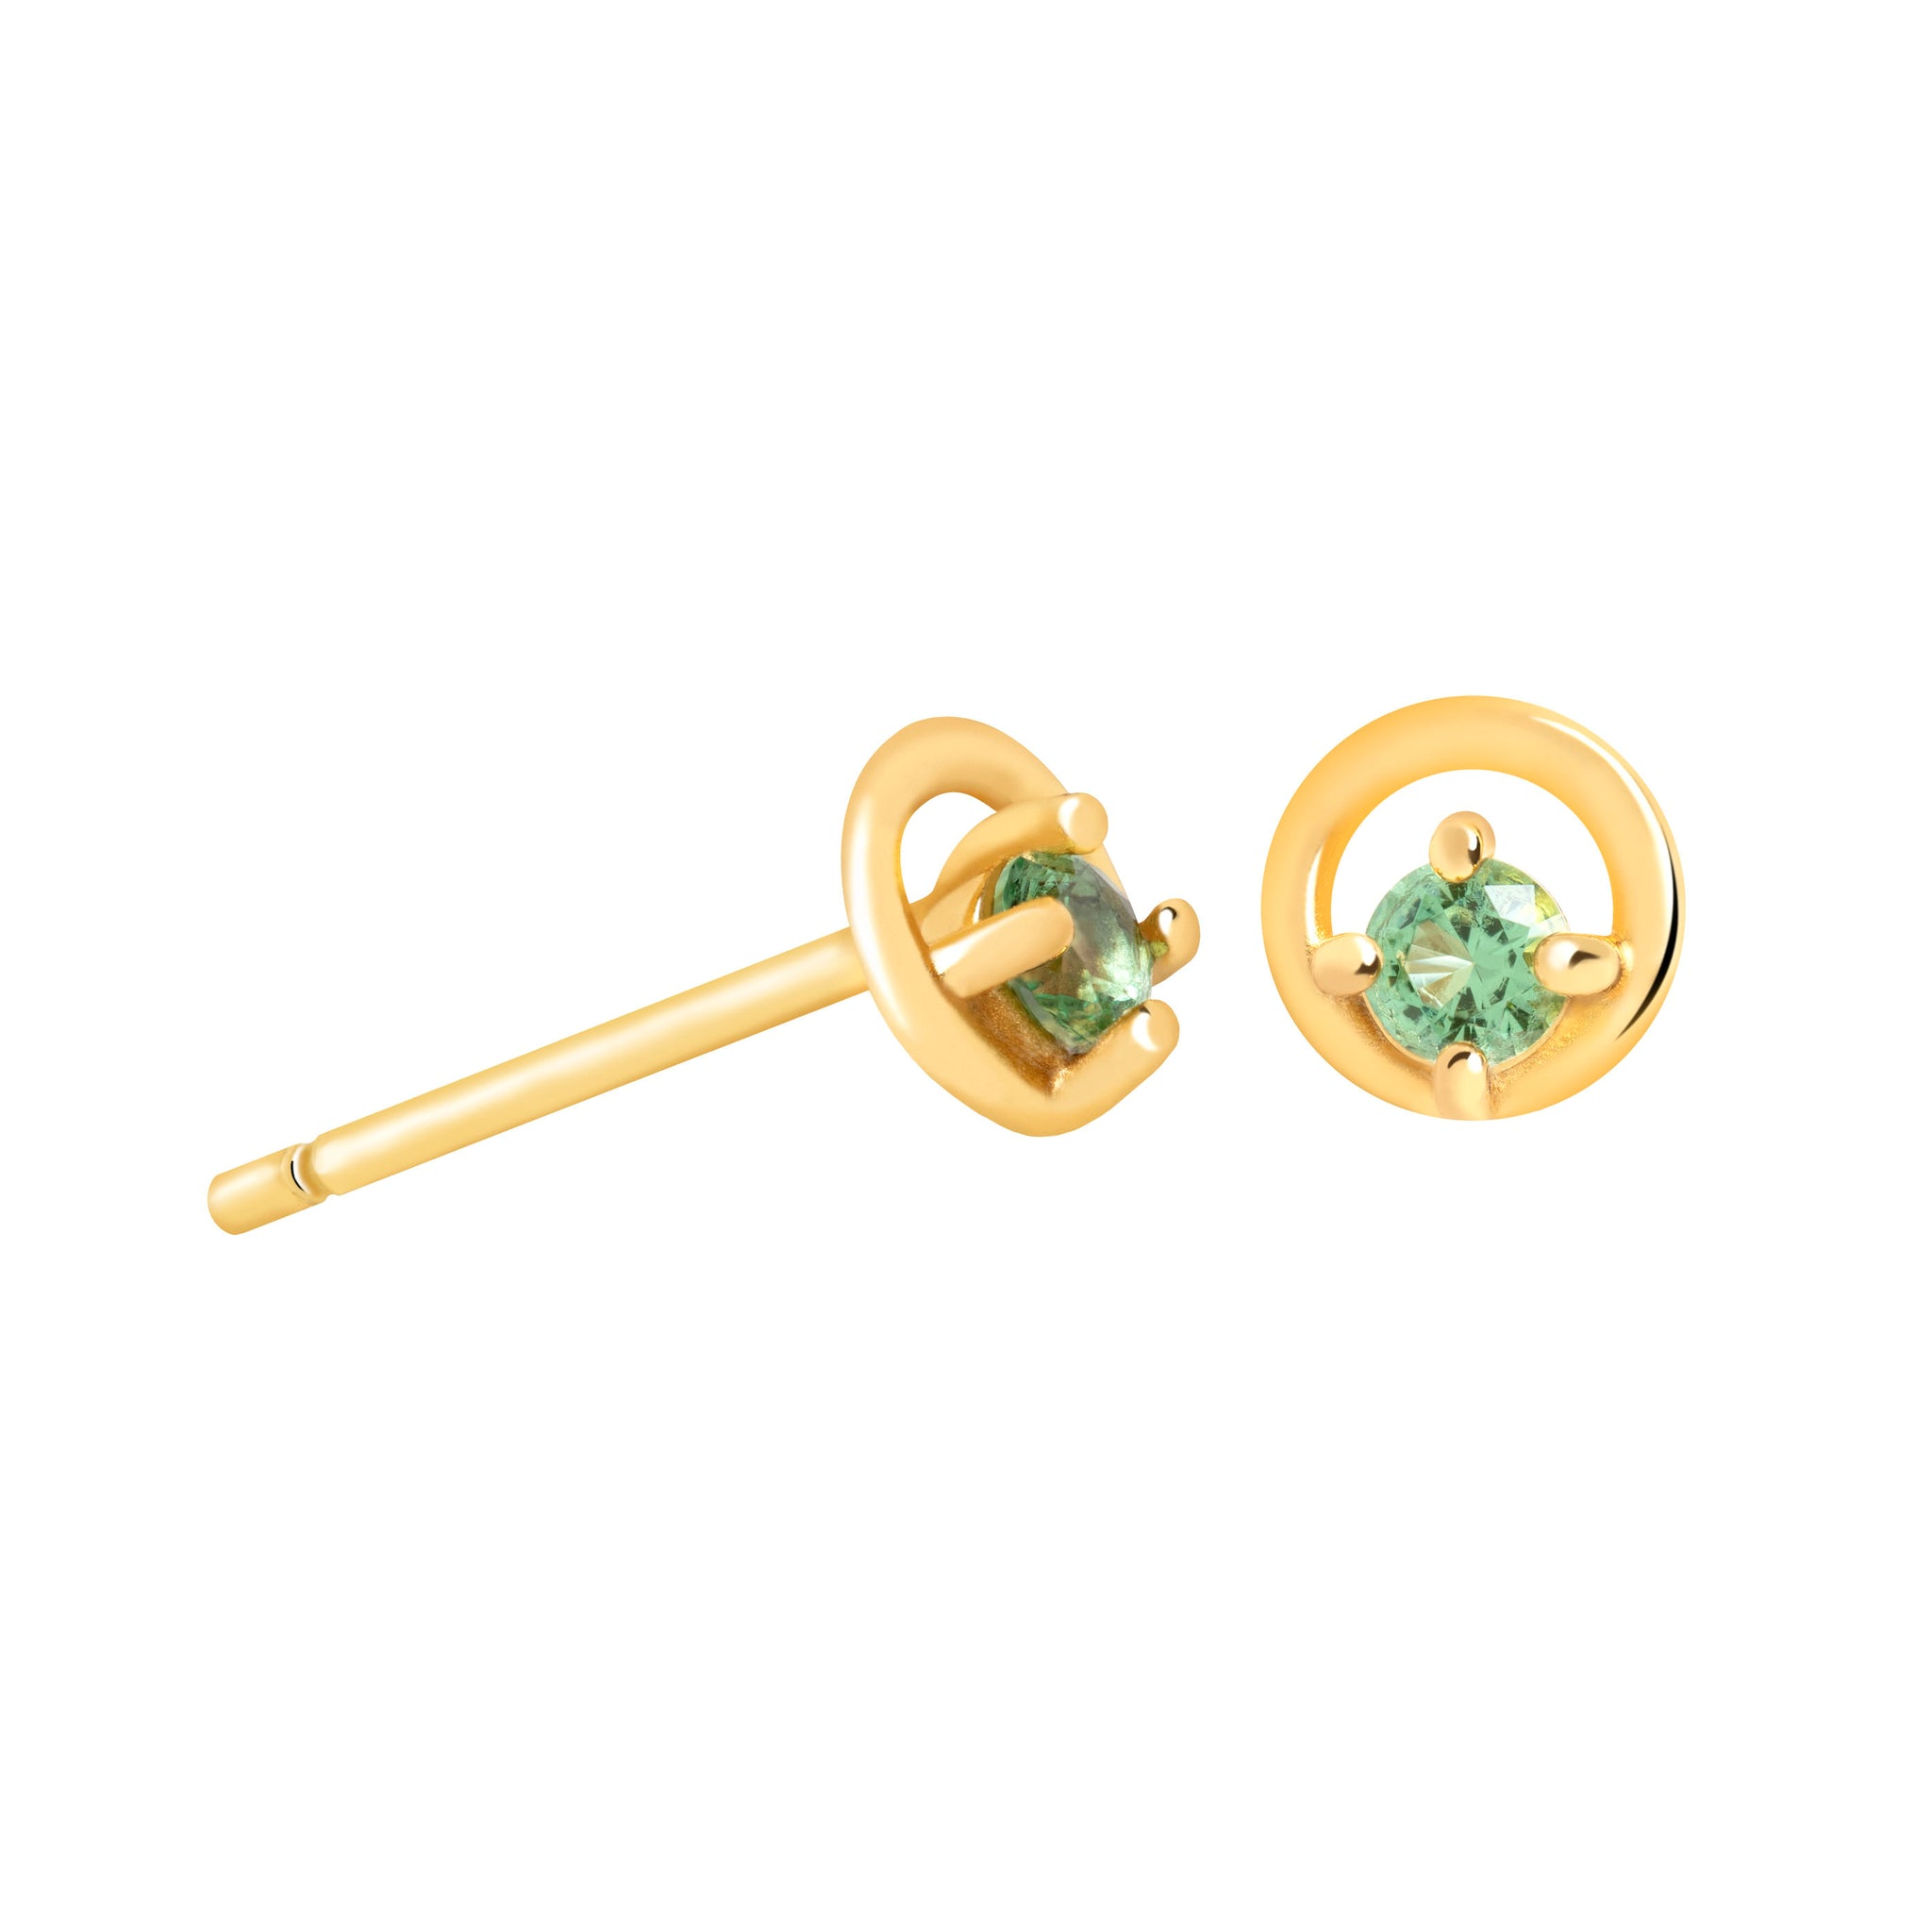 Gleam Stud Earrings in Gold